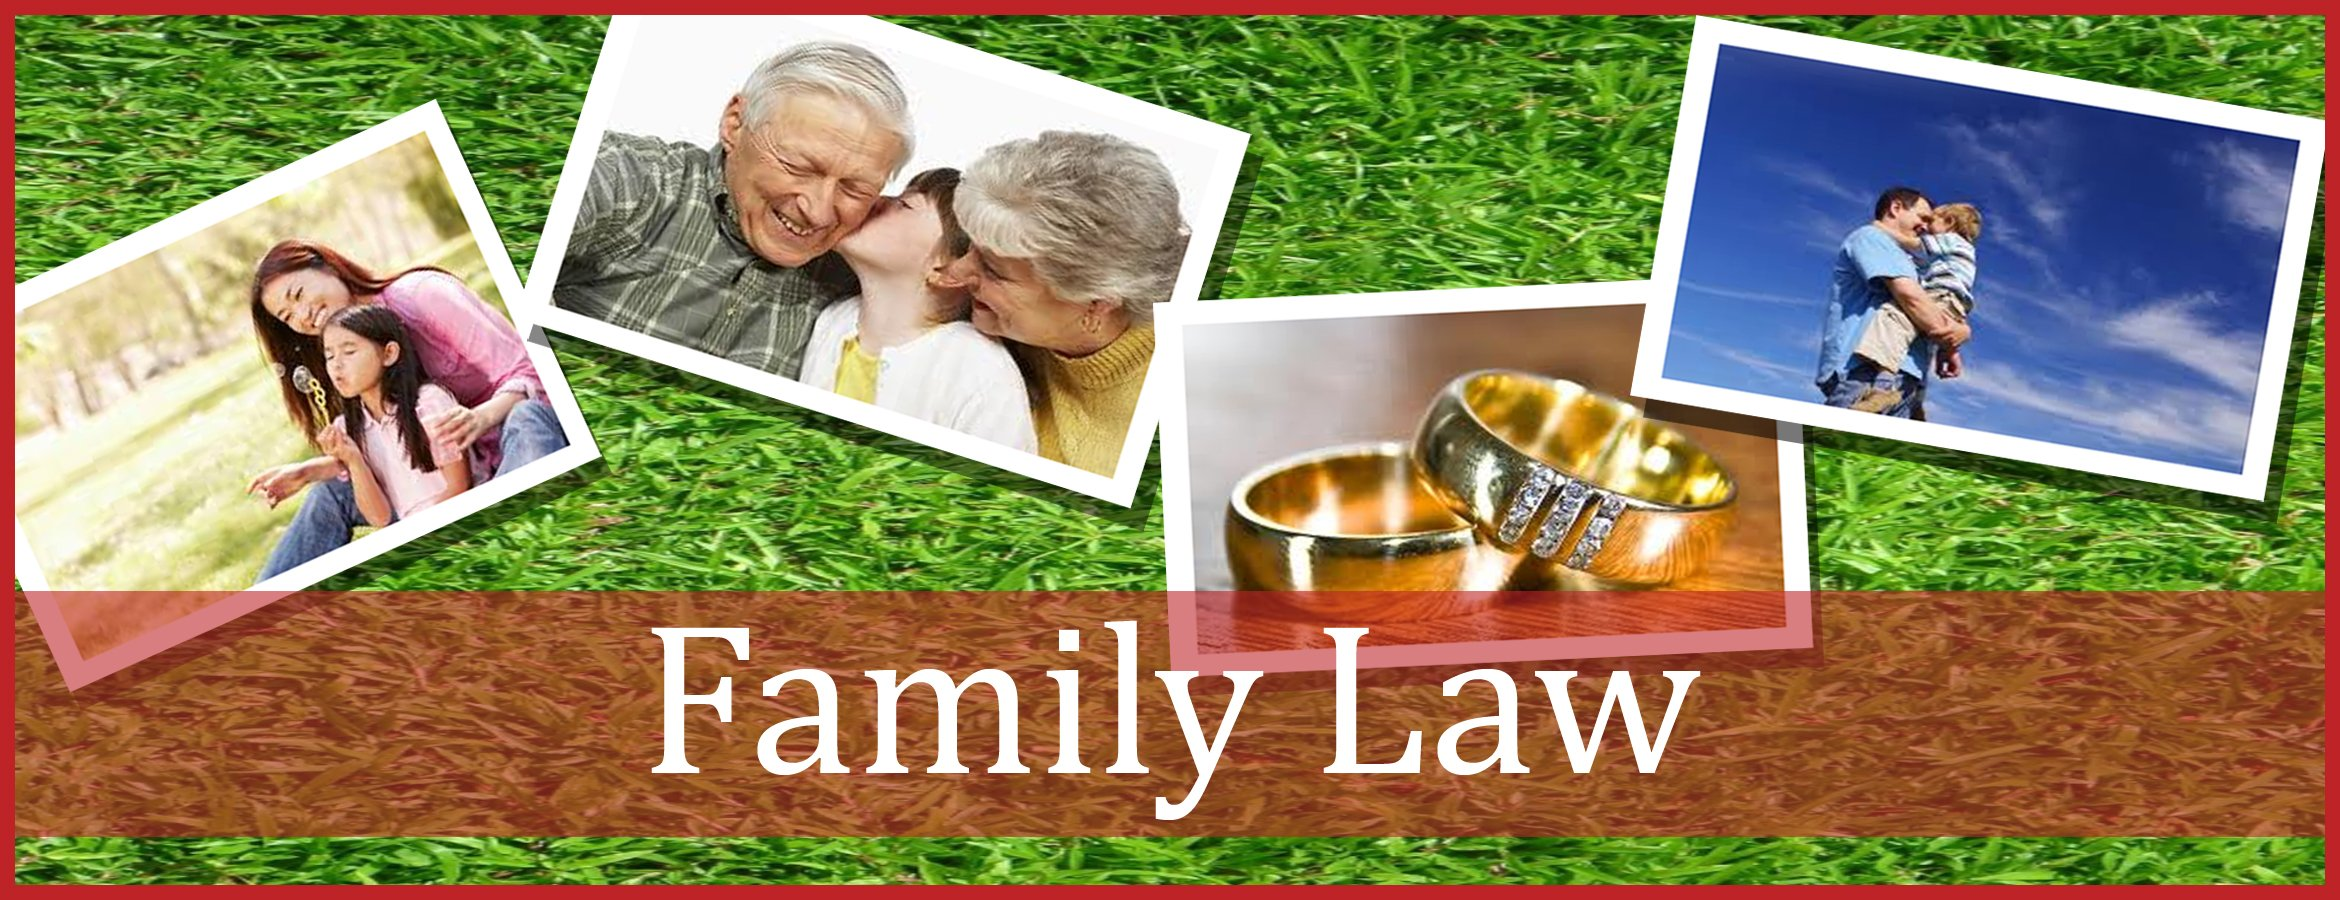 Red Law - Ogden, Utah Family Law Attorney